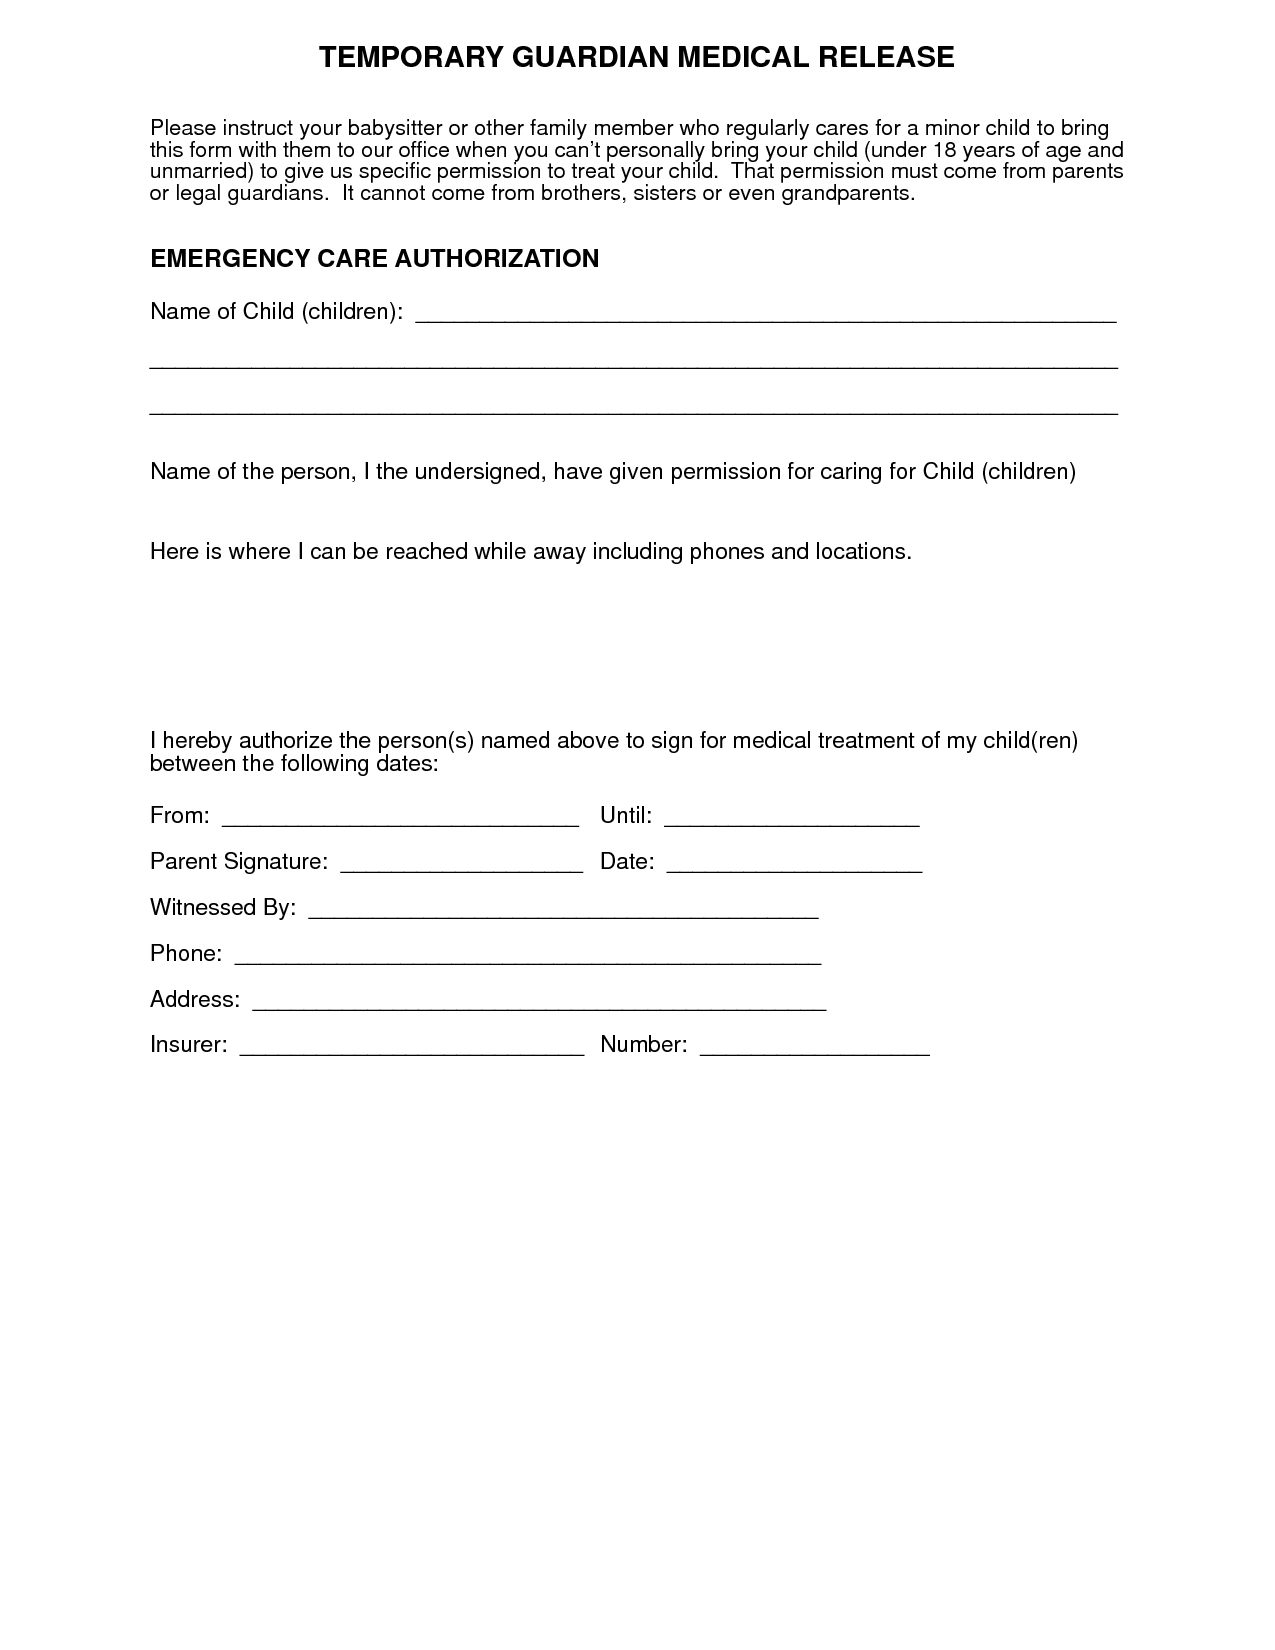 Medical+Authorization+Form+For+Grandparents | For More Medical - Free Printable Medical Forms Kit